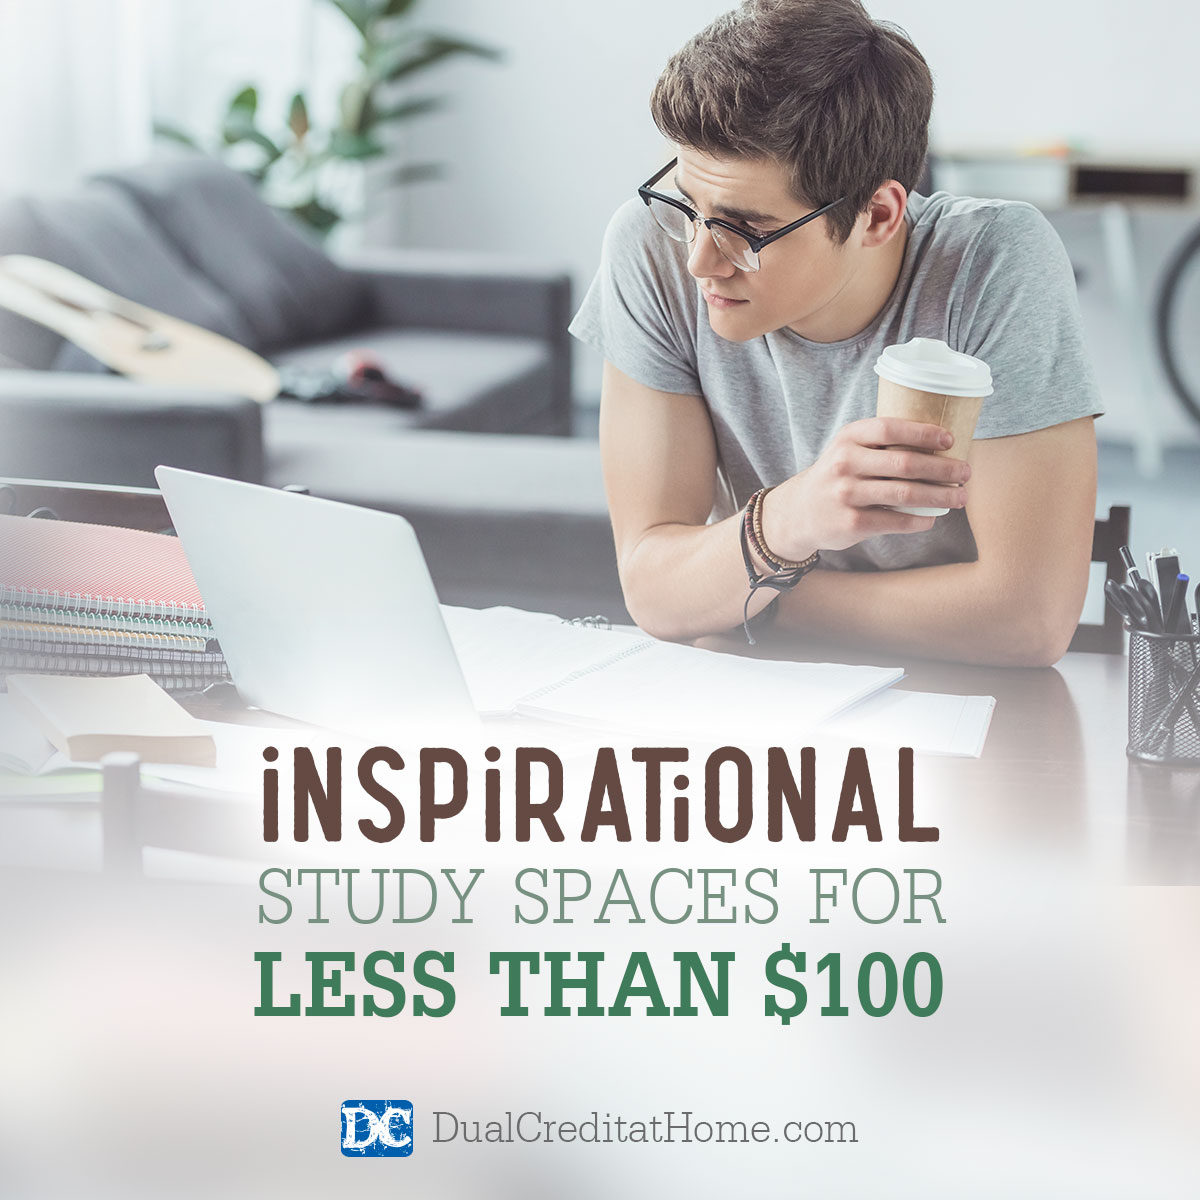 Inspirational Study Spaces for Less Than $100